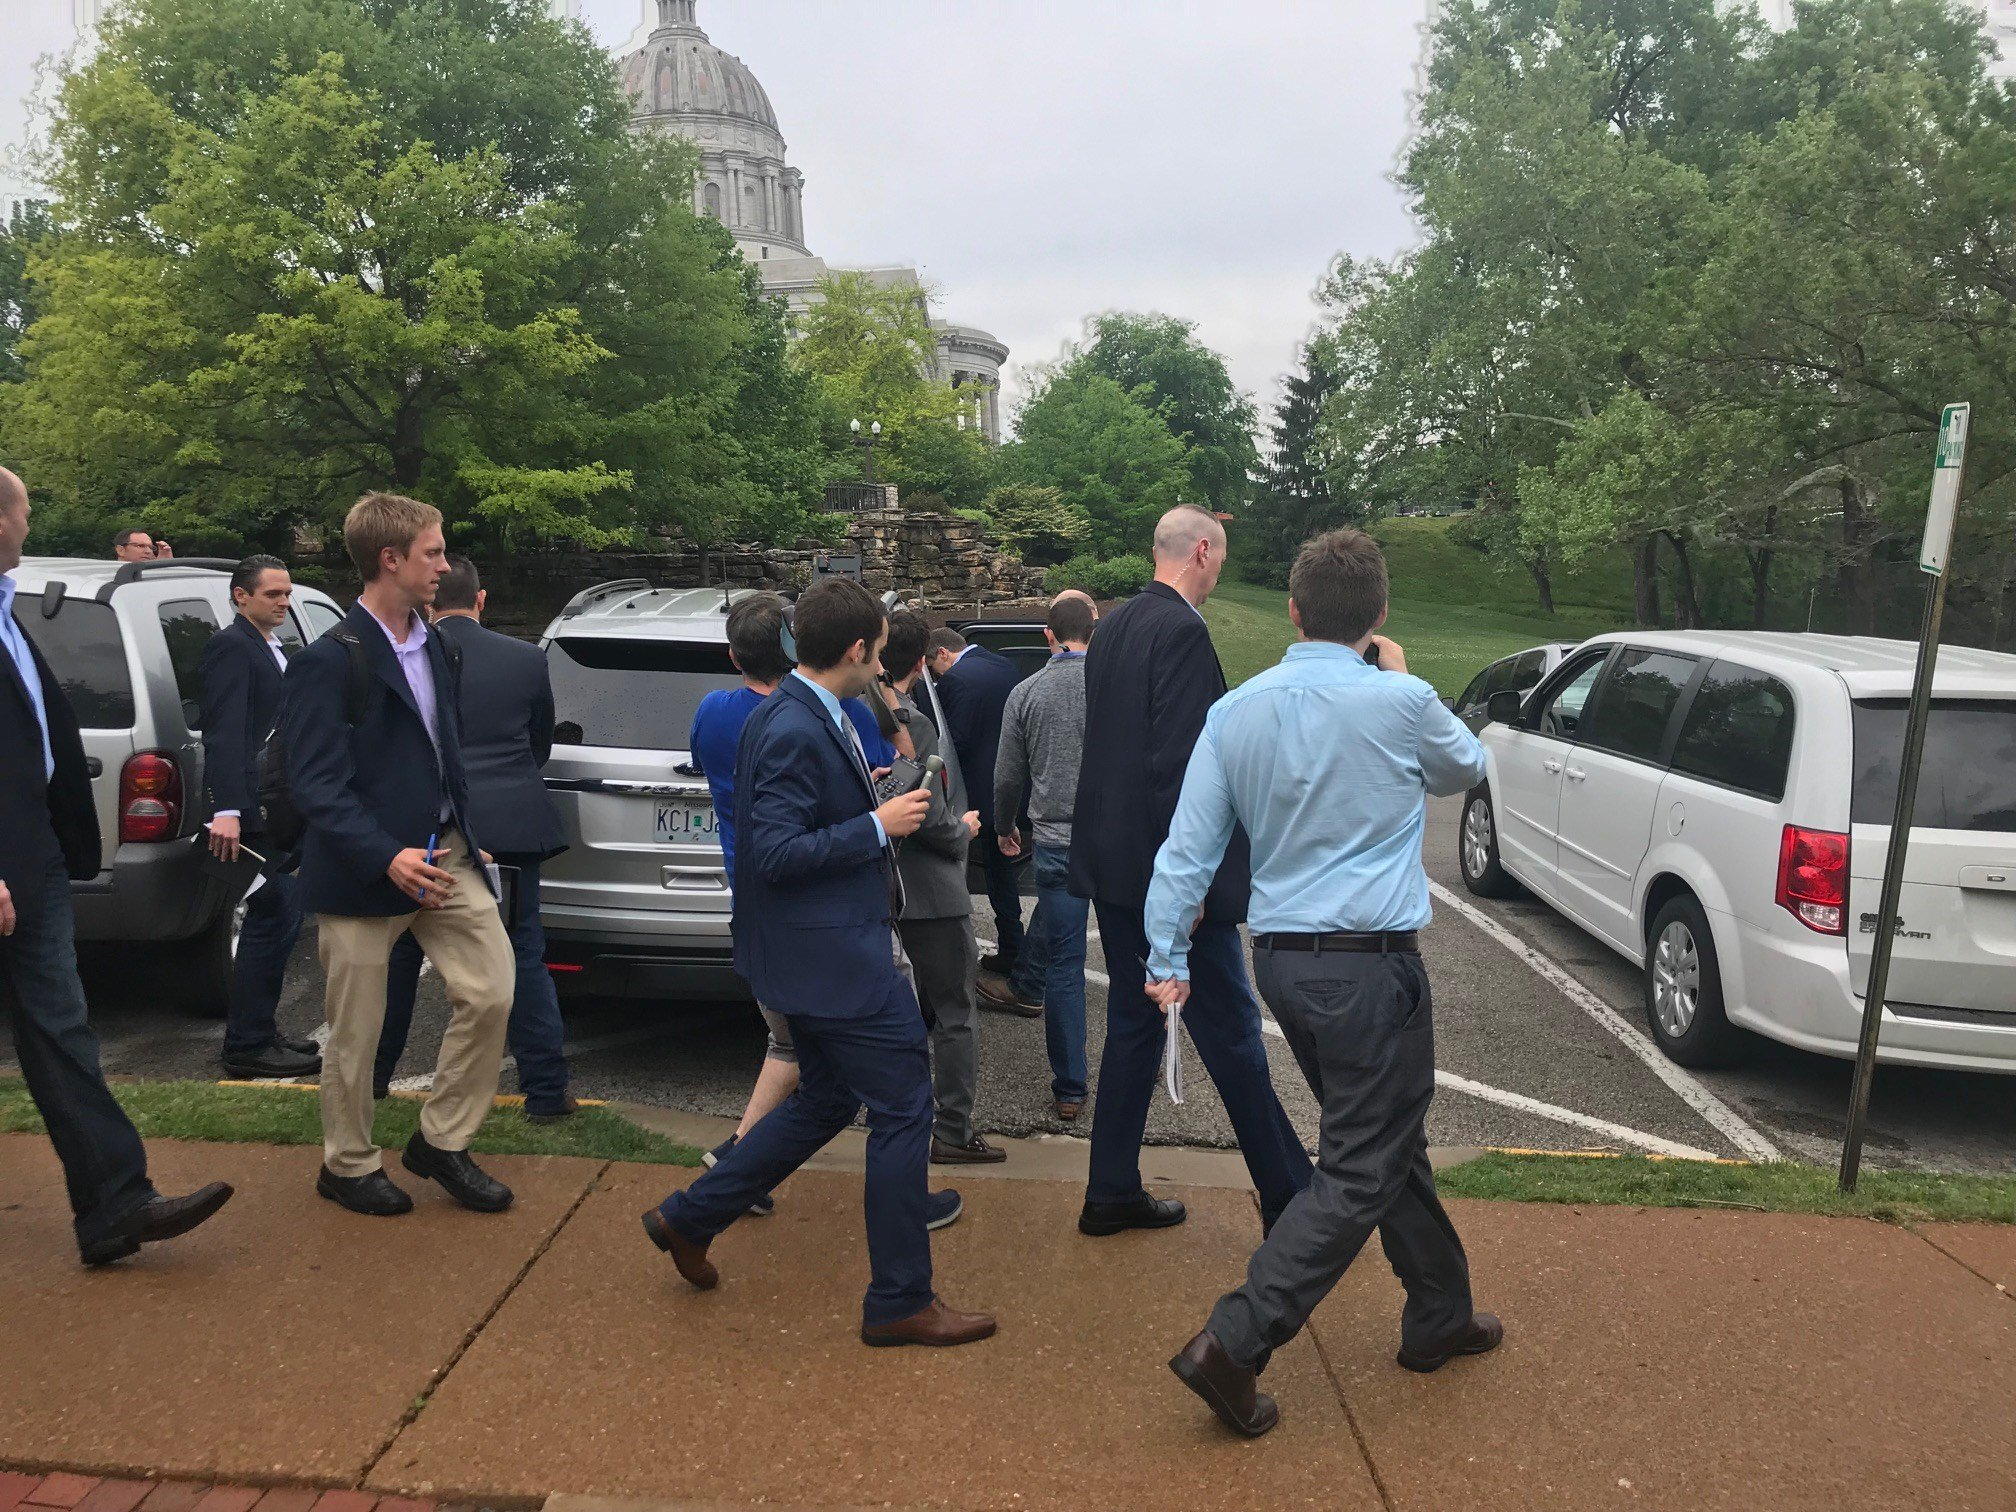 Missouri Governor Eric Greitens spoke at a public event about the bidiesel industry in Missouri and then left without taking any questions from reporters.